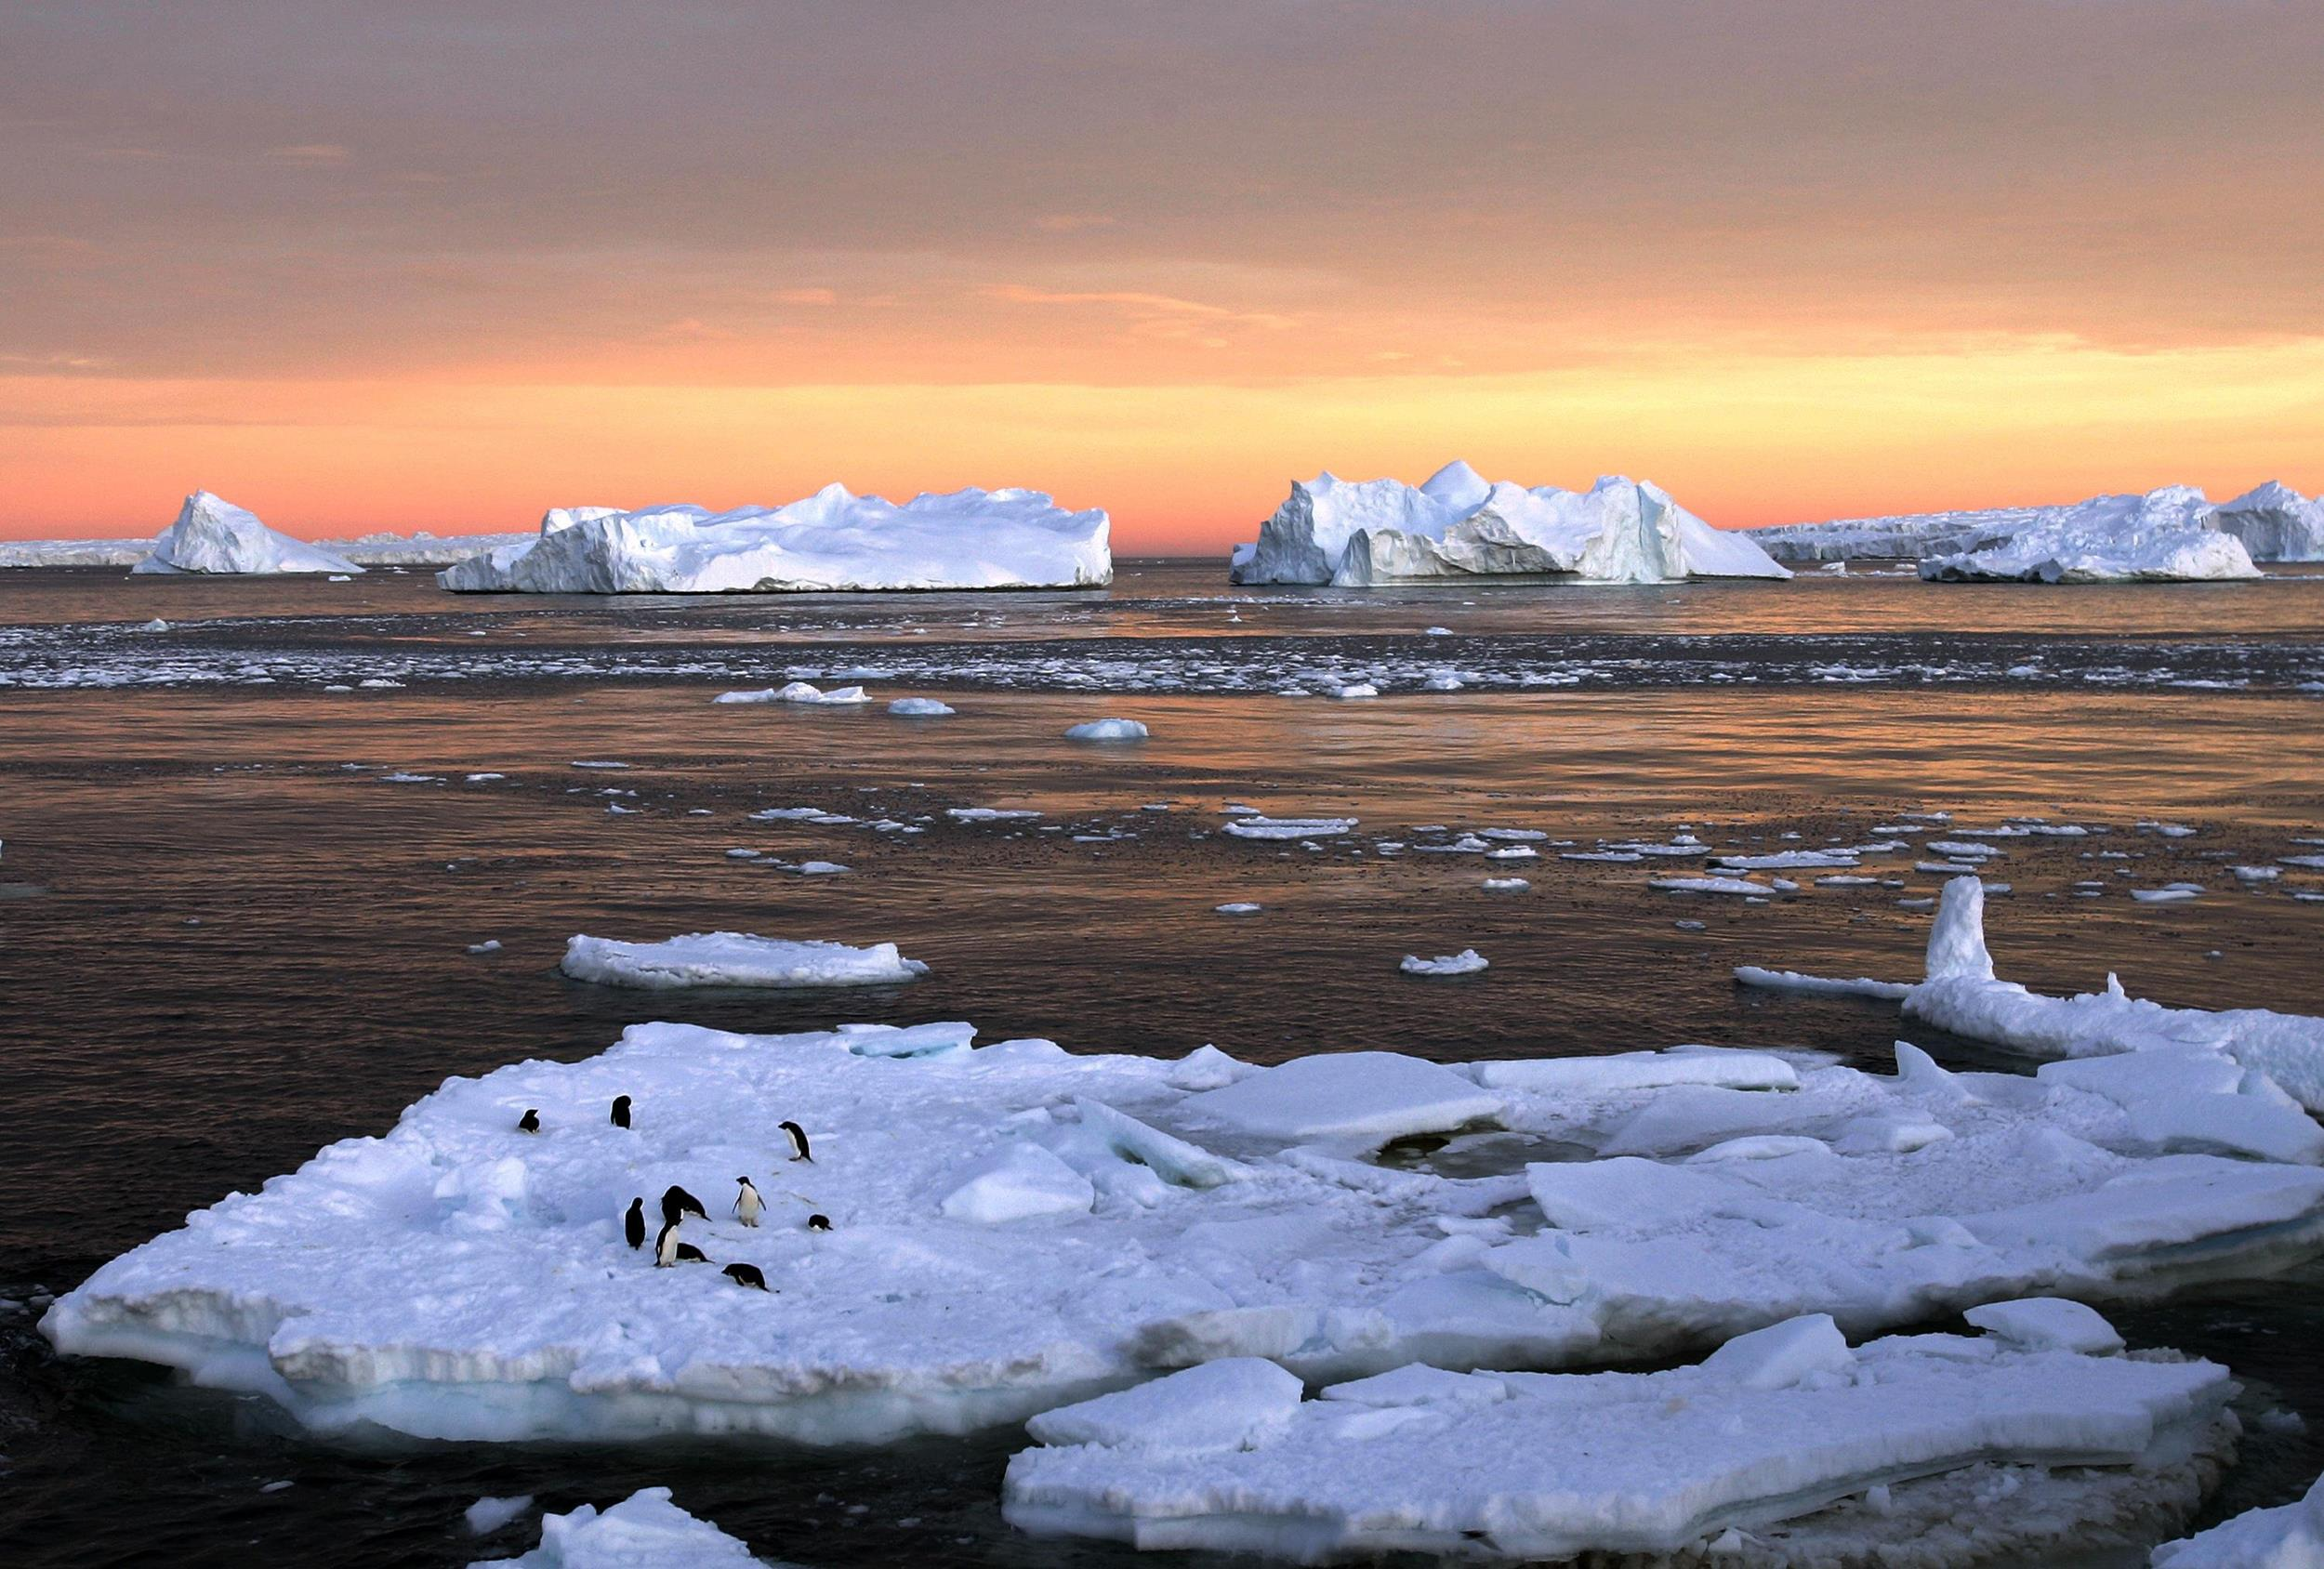 Image: Adelie penguins stand atop ice near the French station at Dumont d'Urville in East Antarctica